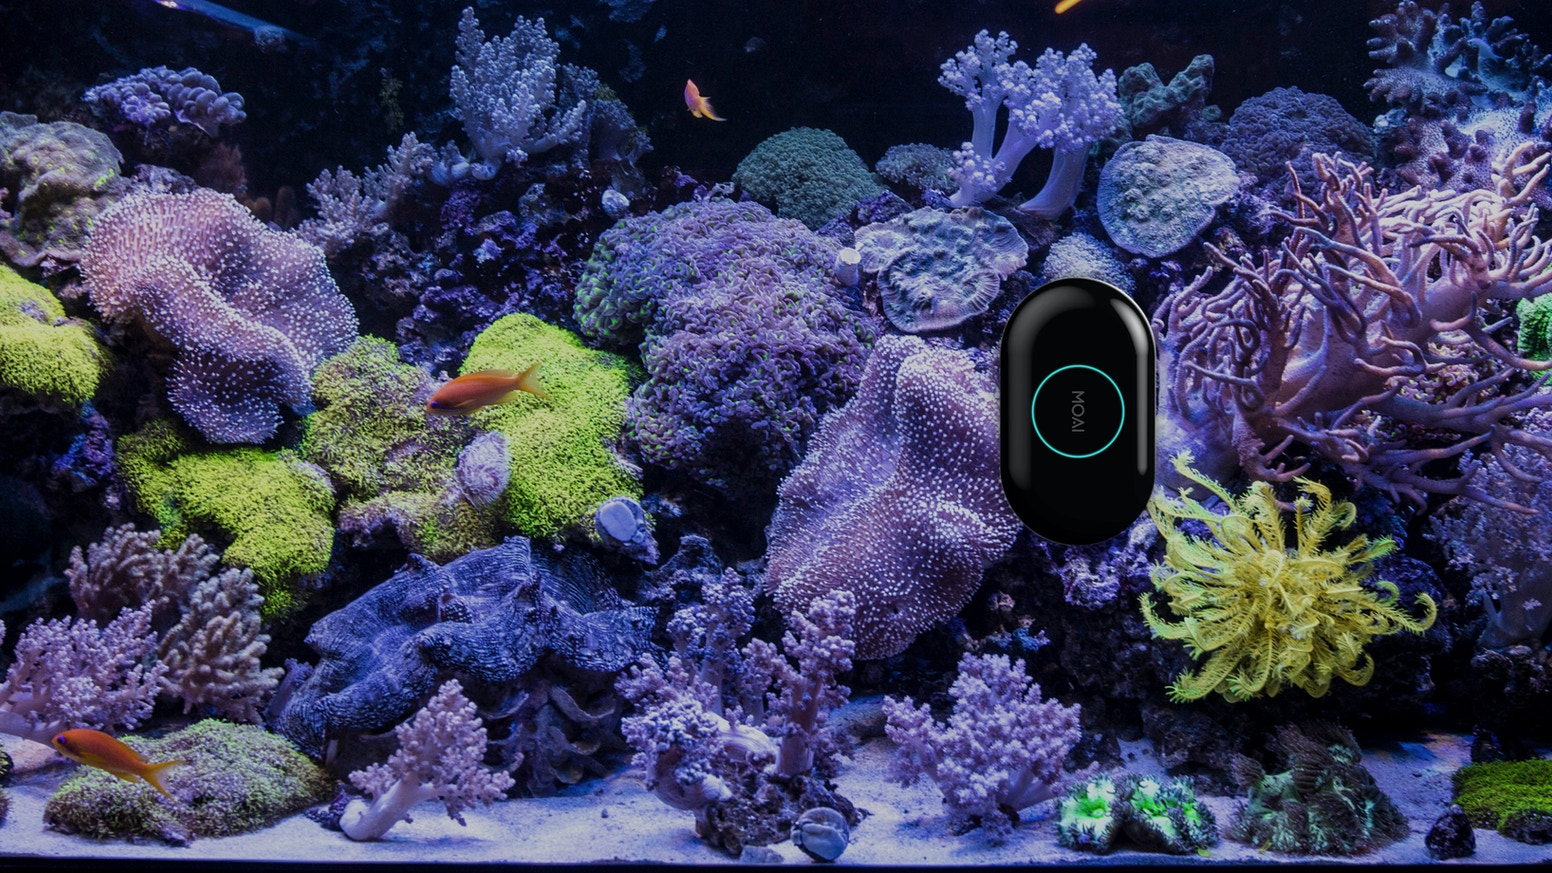 App-controlled robot helps you keep aquarium connected and clean